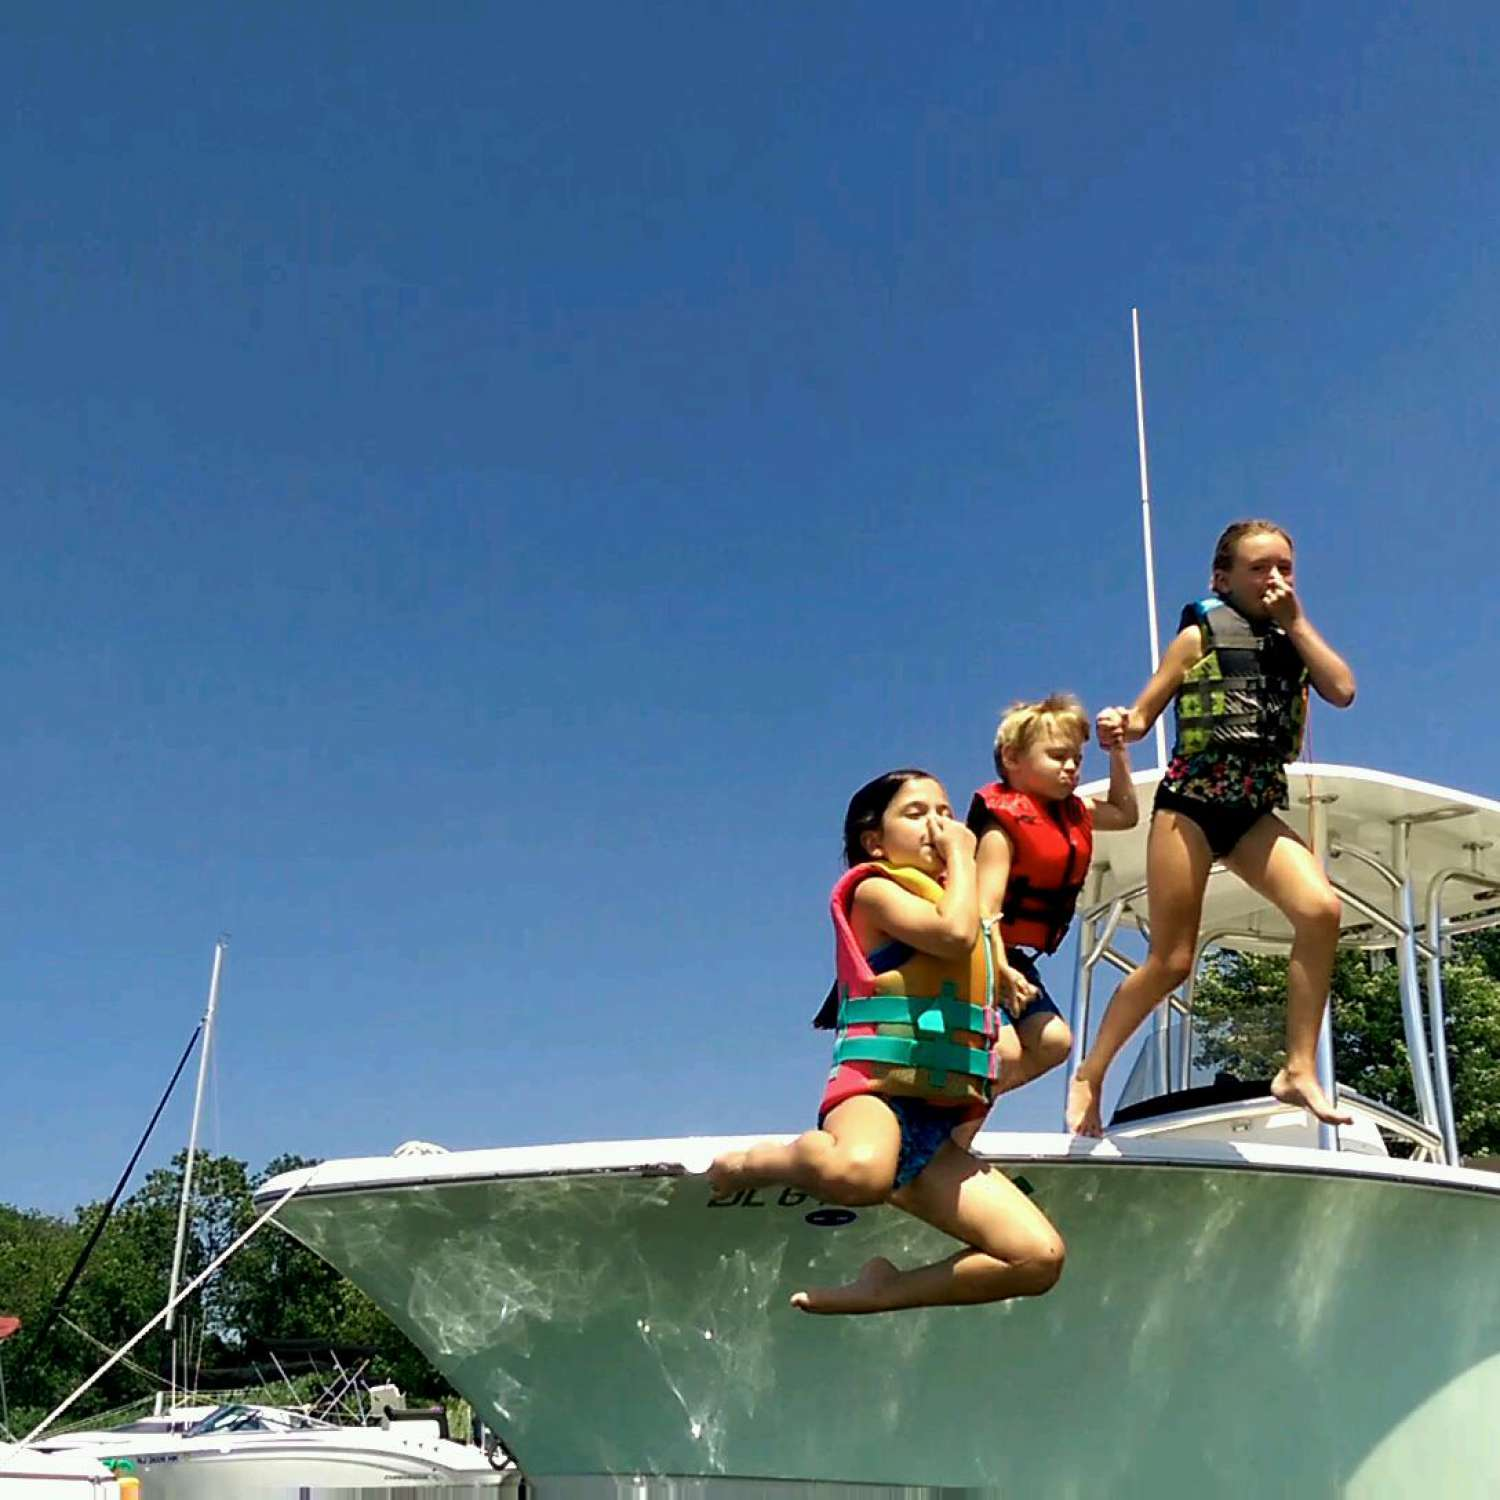 Title: 1,2,3! - On board their Sportsman Open 232 Center Console - Location: Blackwood, New Jersey. Participating in the Photo Contest #SportsmanAugust2017